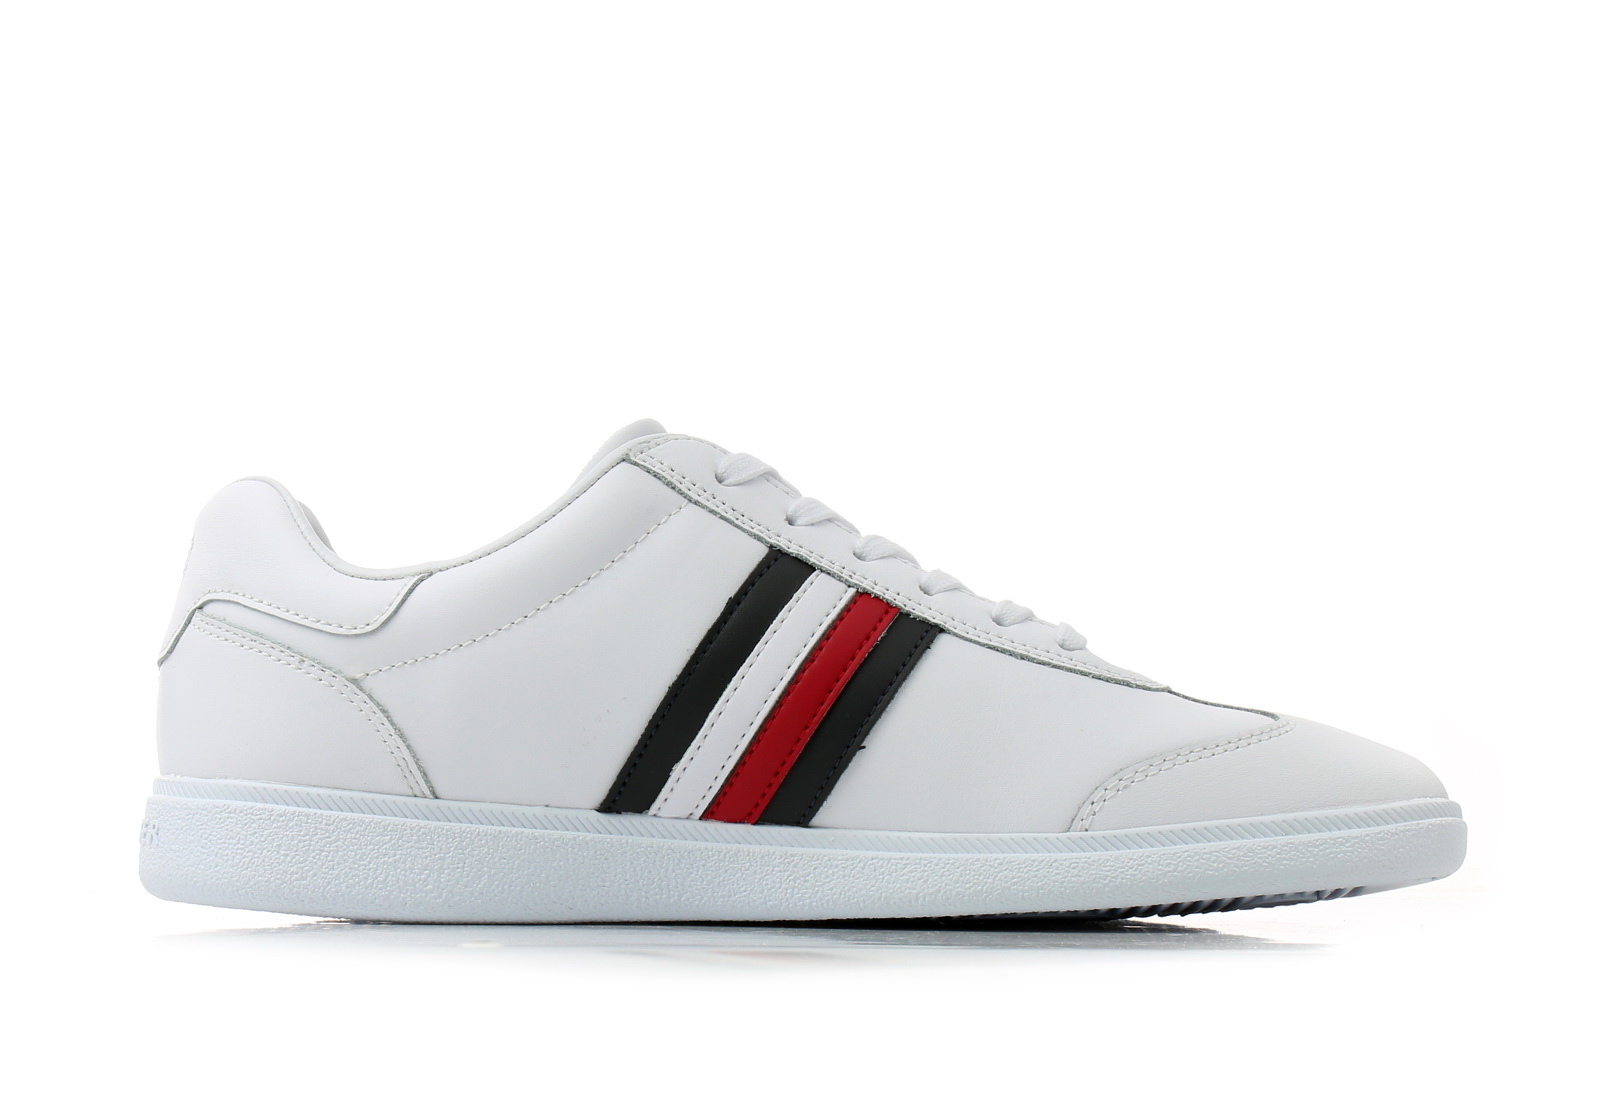 7fc3bb4673 Tommy Hilfiger Cipő - Danny 13a - 19S-2038-100 - Office Shoes ...